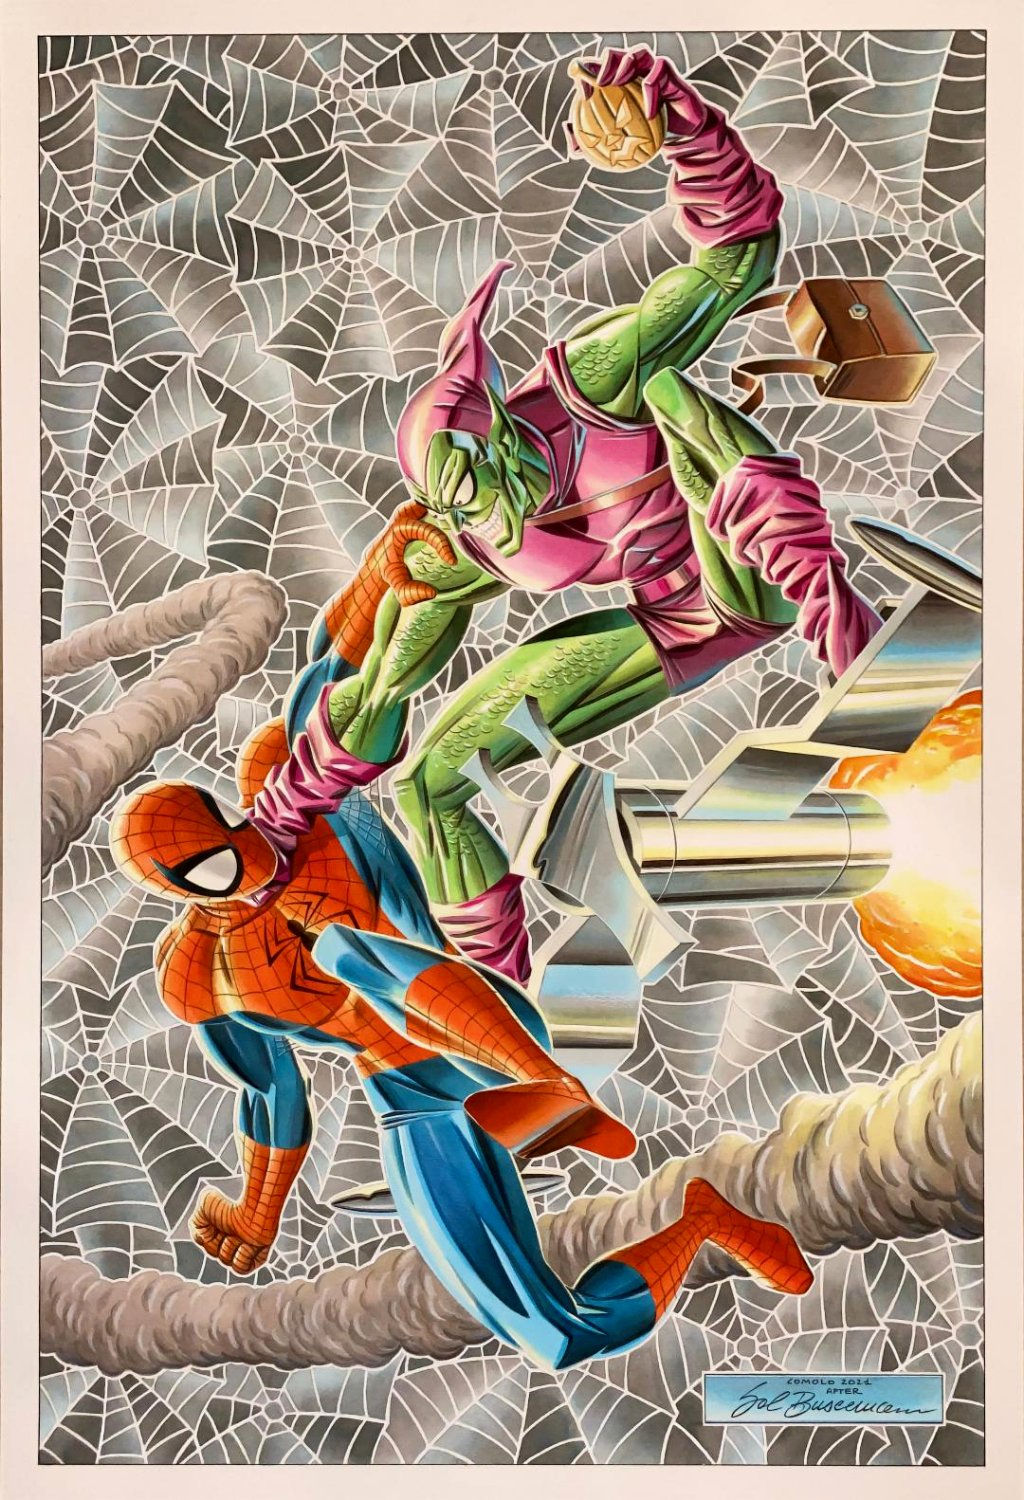 Spectacular Spider-Man #200 Large Painted Spidey / Green Goblin Battle Cover Recreation